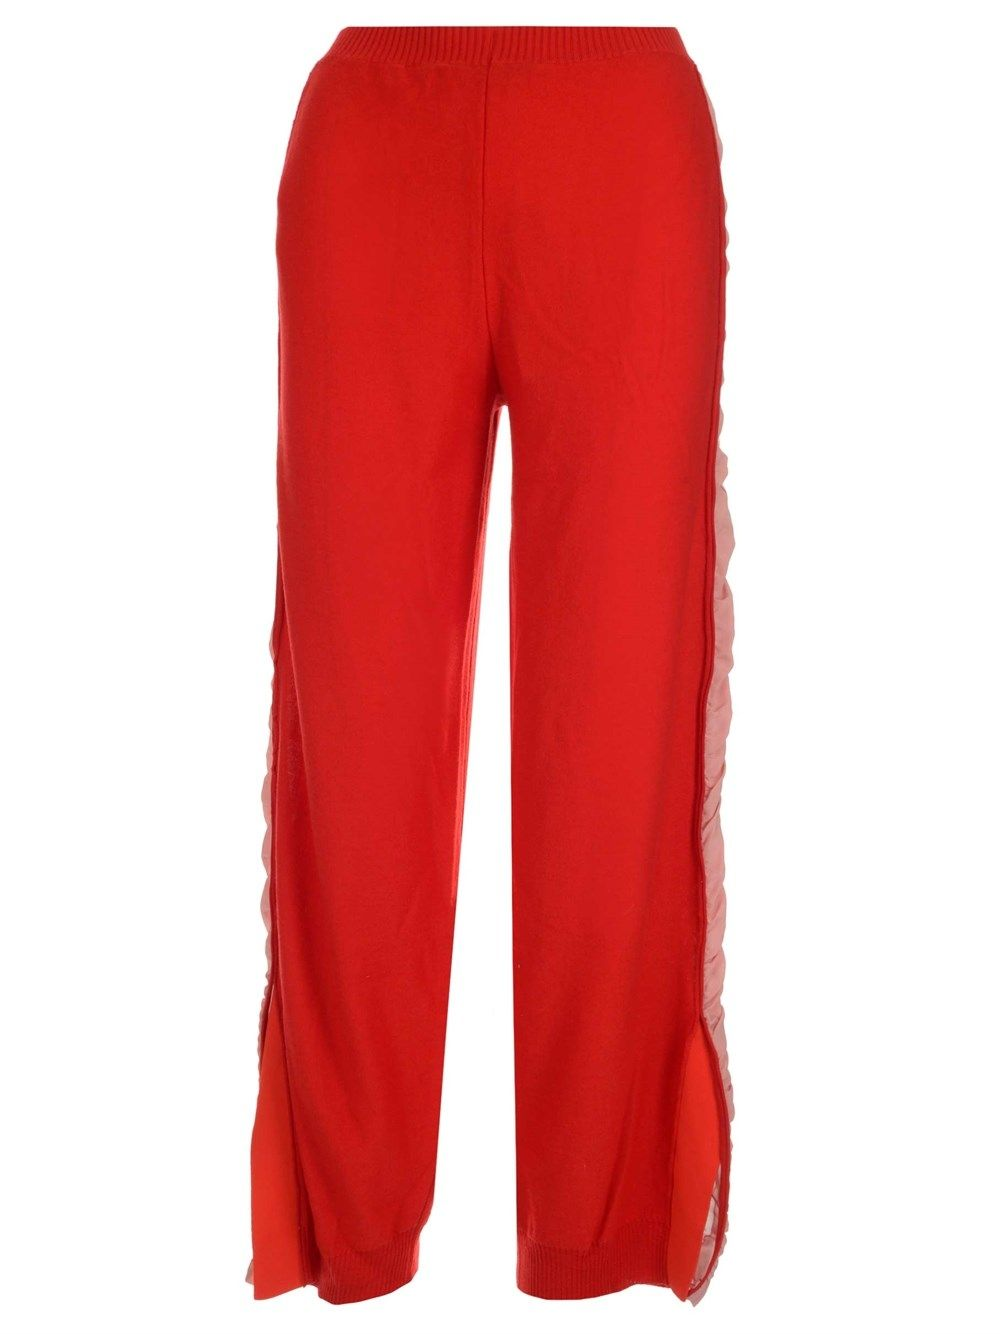 Stella Mccartney STELLA MCCARTNEY WOMEN'S 581719S22356515 RED OTHER MATERIALS PANTS